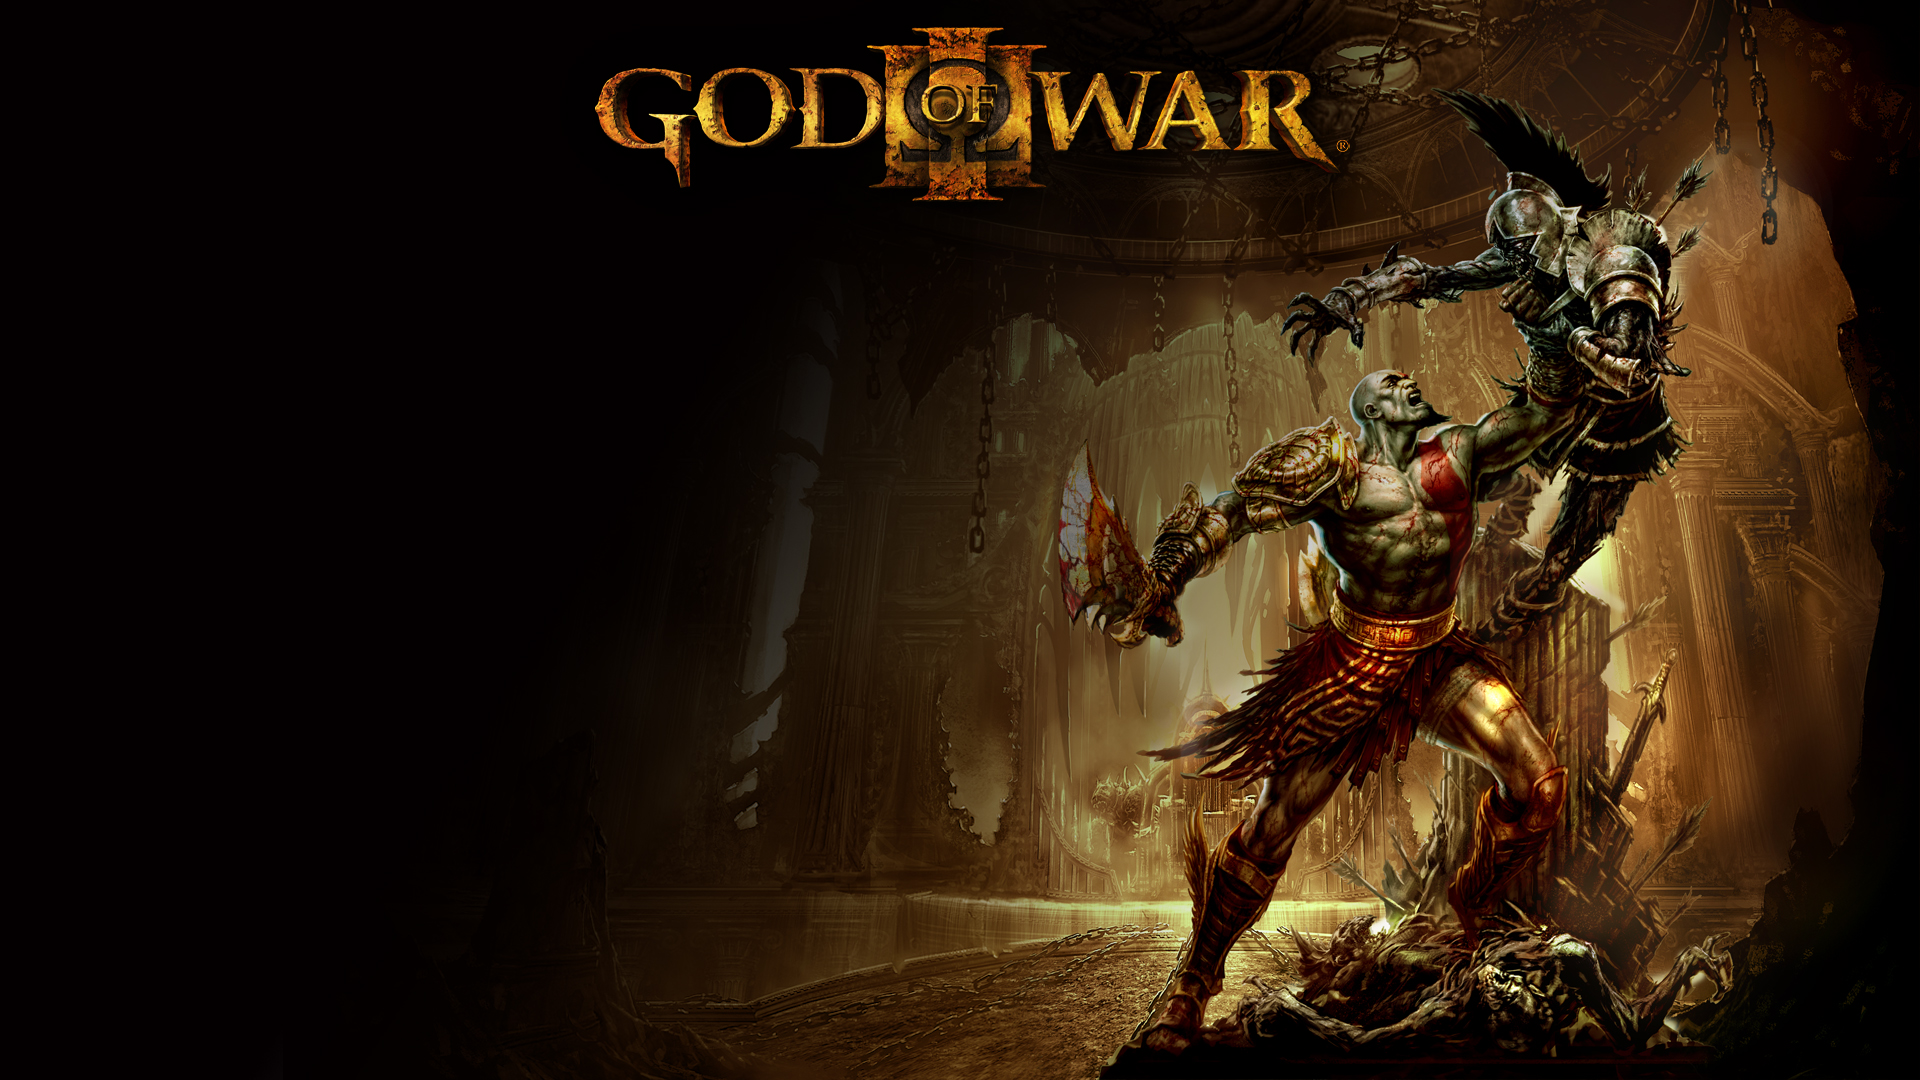 God of War 3 Desktop Wallpapers FREE on Latorocom 1920x1080